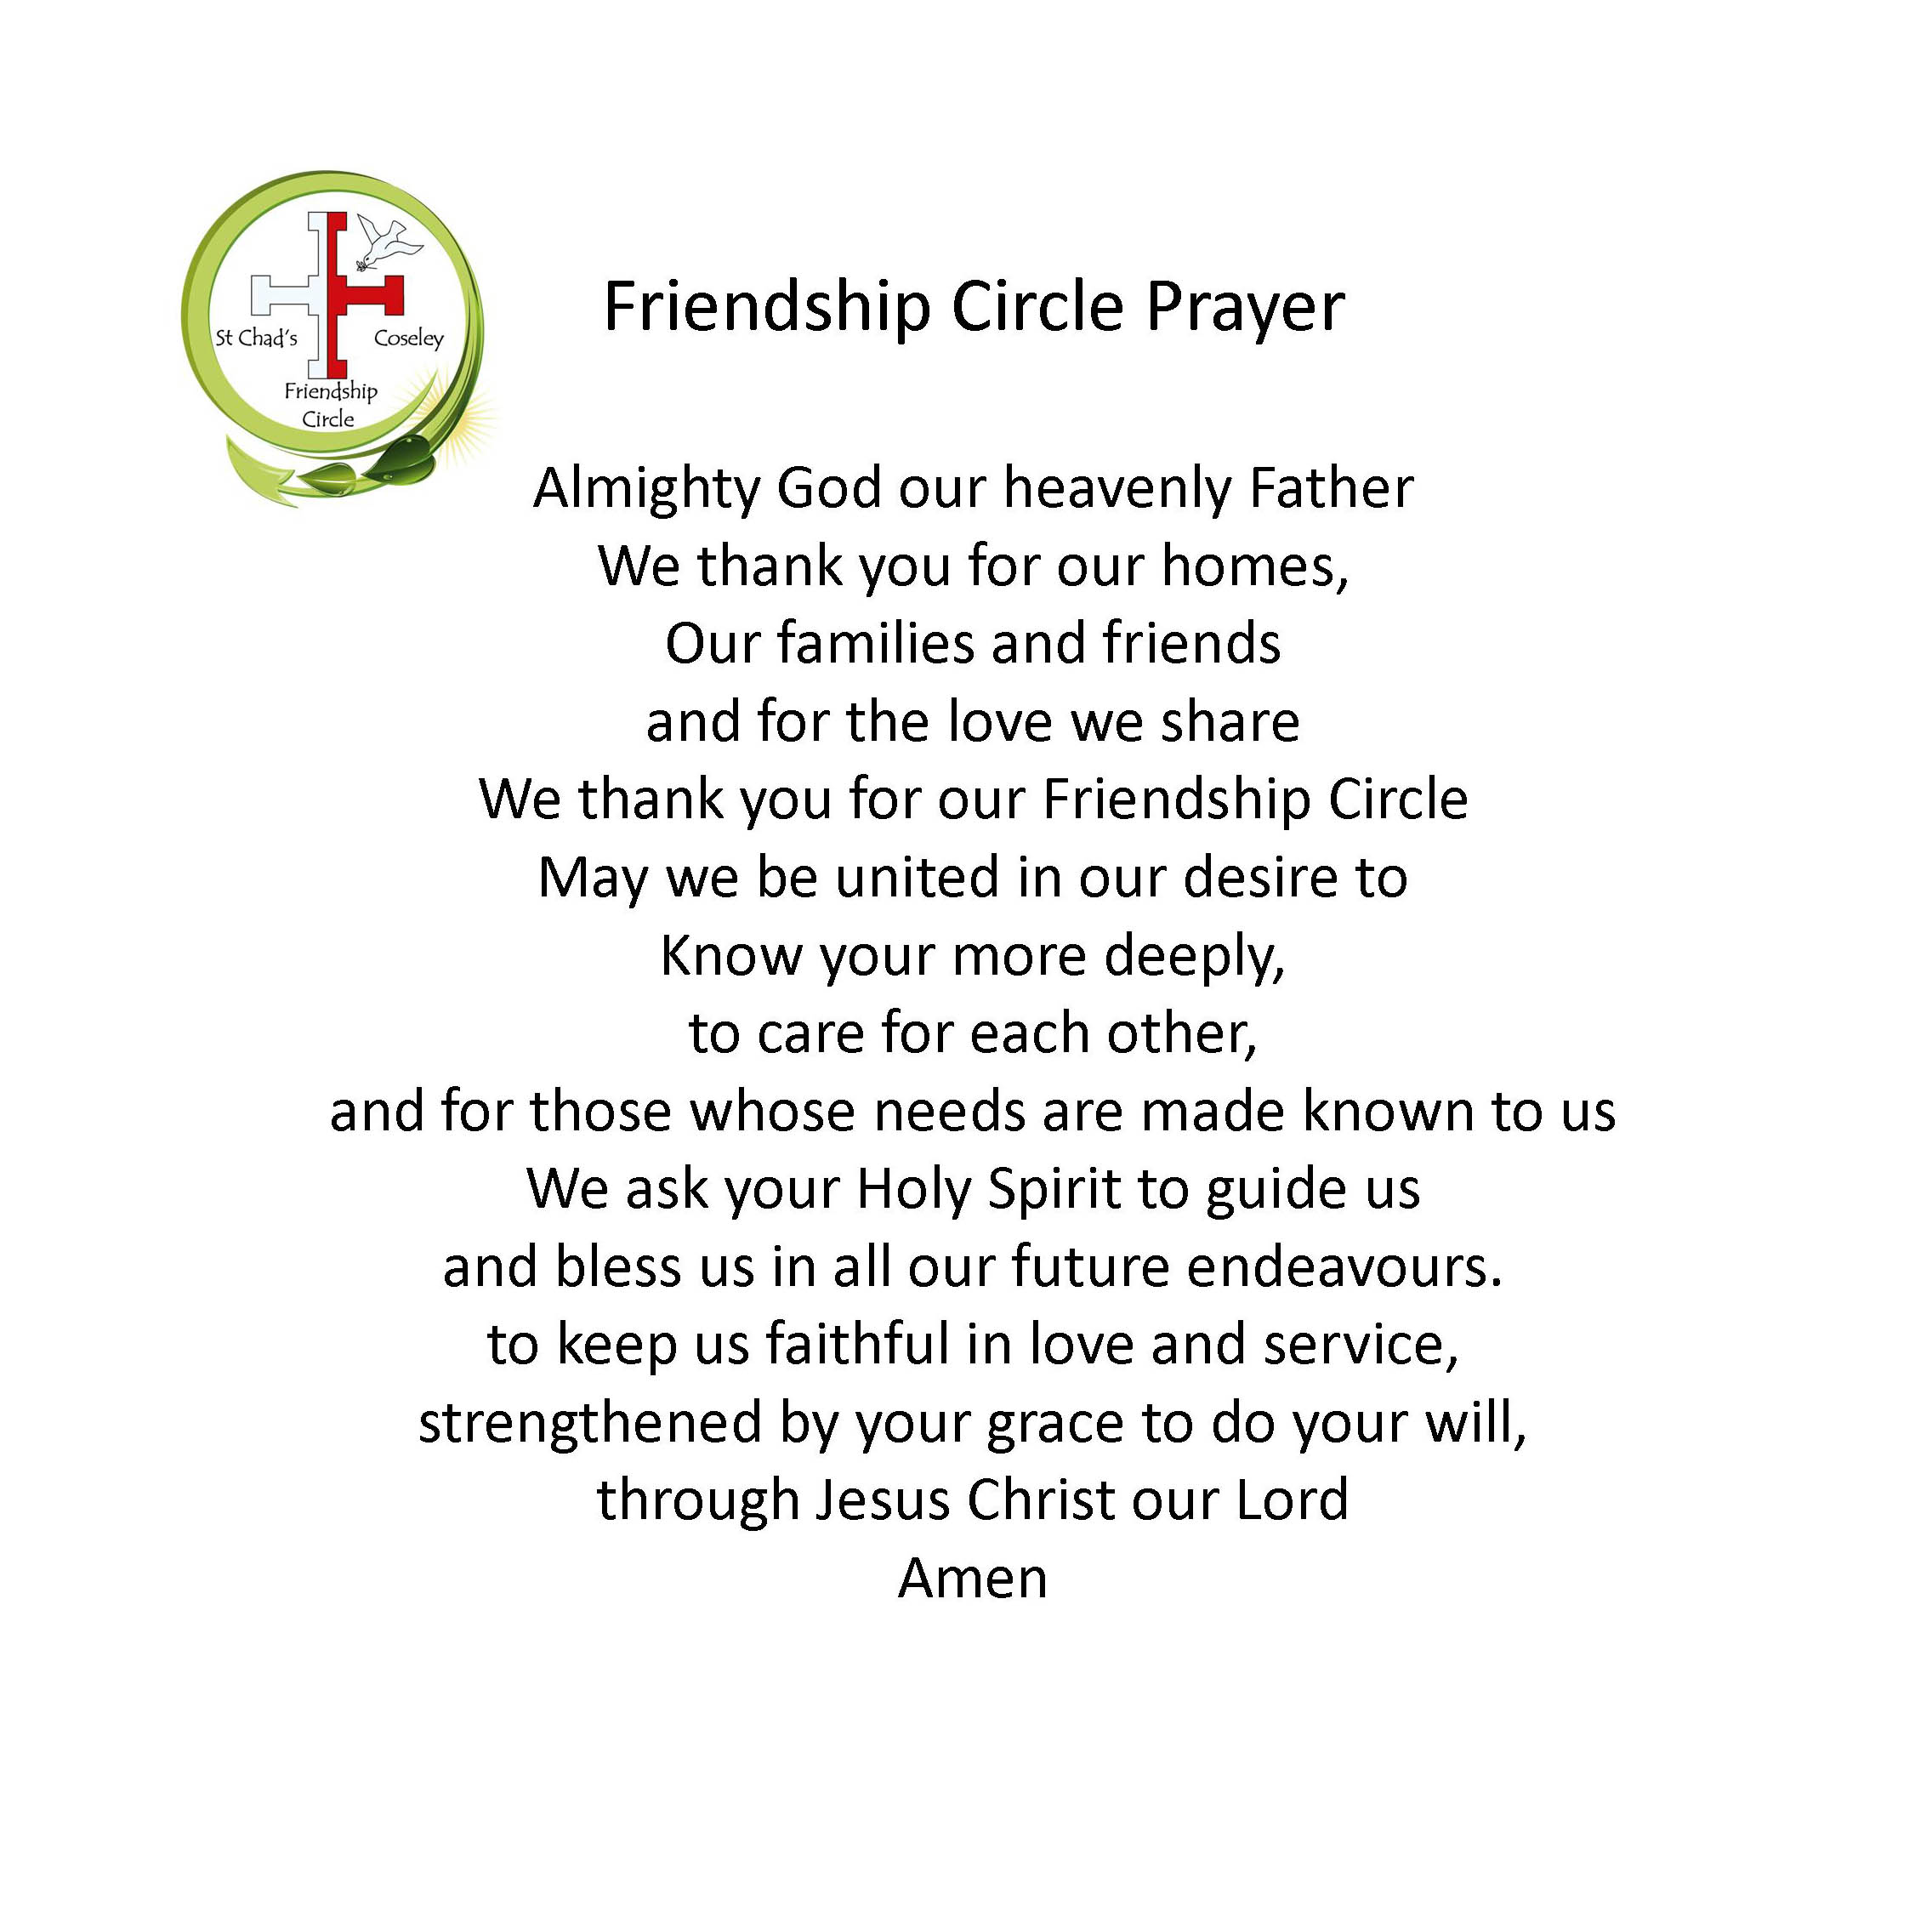 Friendship circle st chads coseley f c prayer altavistaventures Image collections